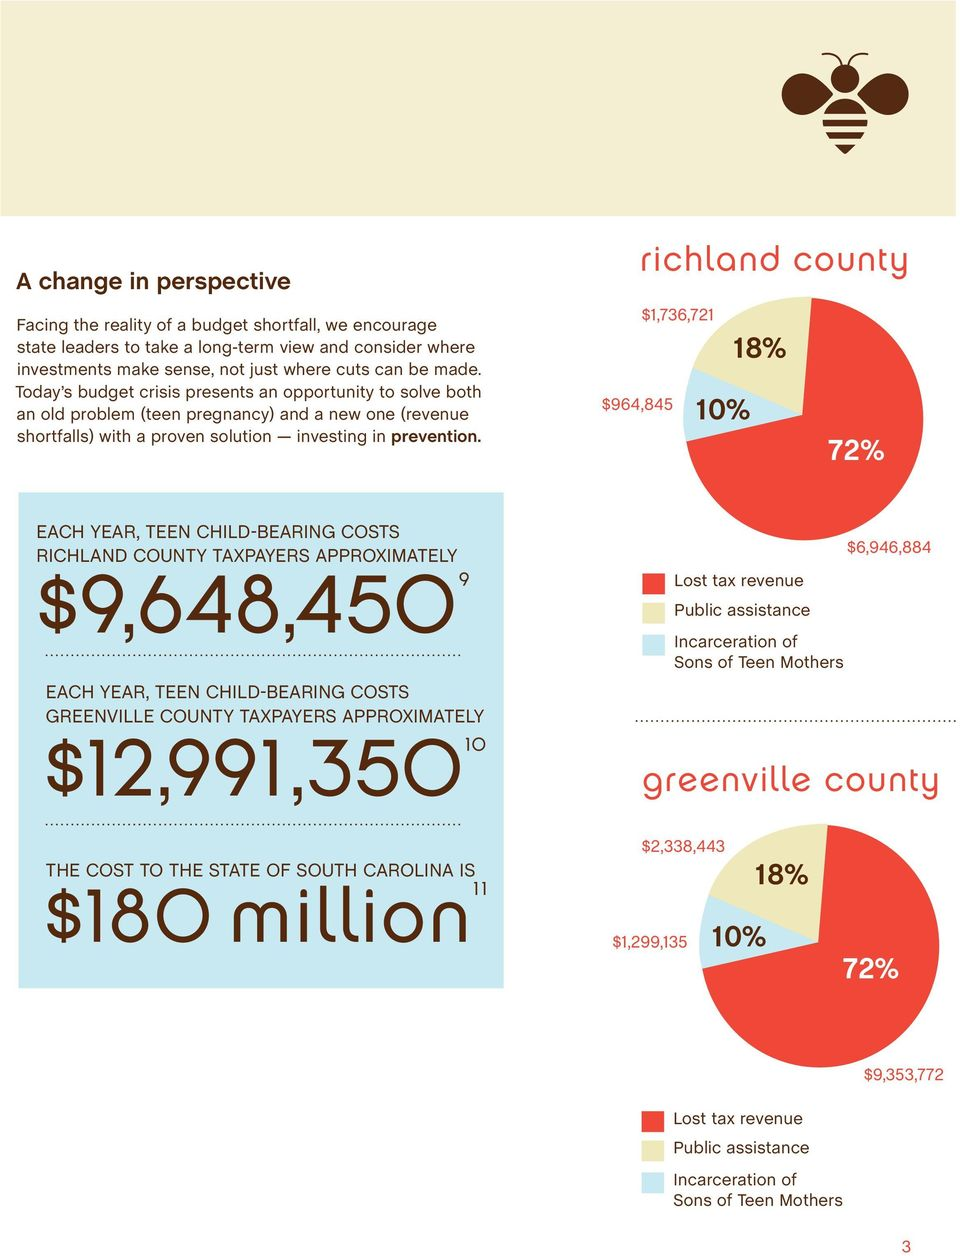 $964,845 richland county $1,736,721 18% 10% 72% EACH YEAR, TEEN CHILD-BEARING COSTS RICHLAND COUNTY TAXPAYERS APPROXIMATELY $9,648,4509 EACH YEAR, TEEN CHILD-BEARING COSTS GREENVILLE COUNTY TAXPAYERS